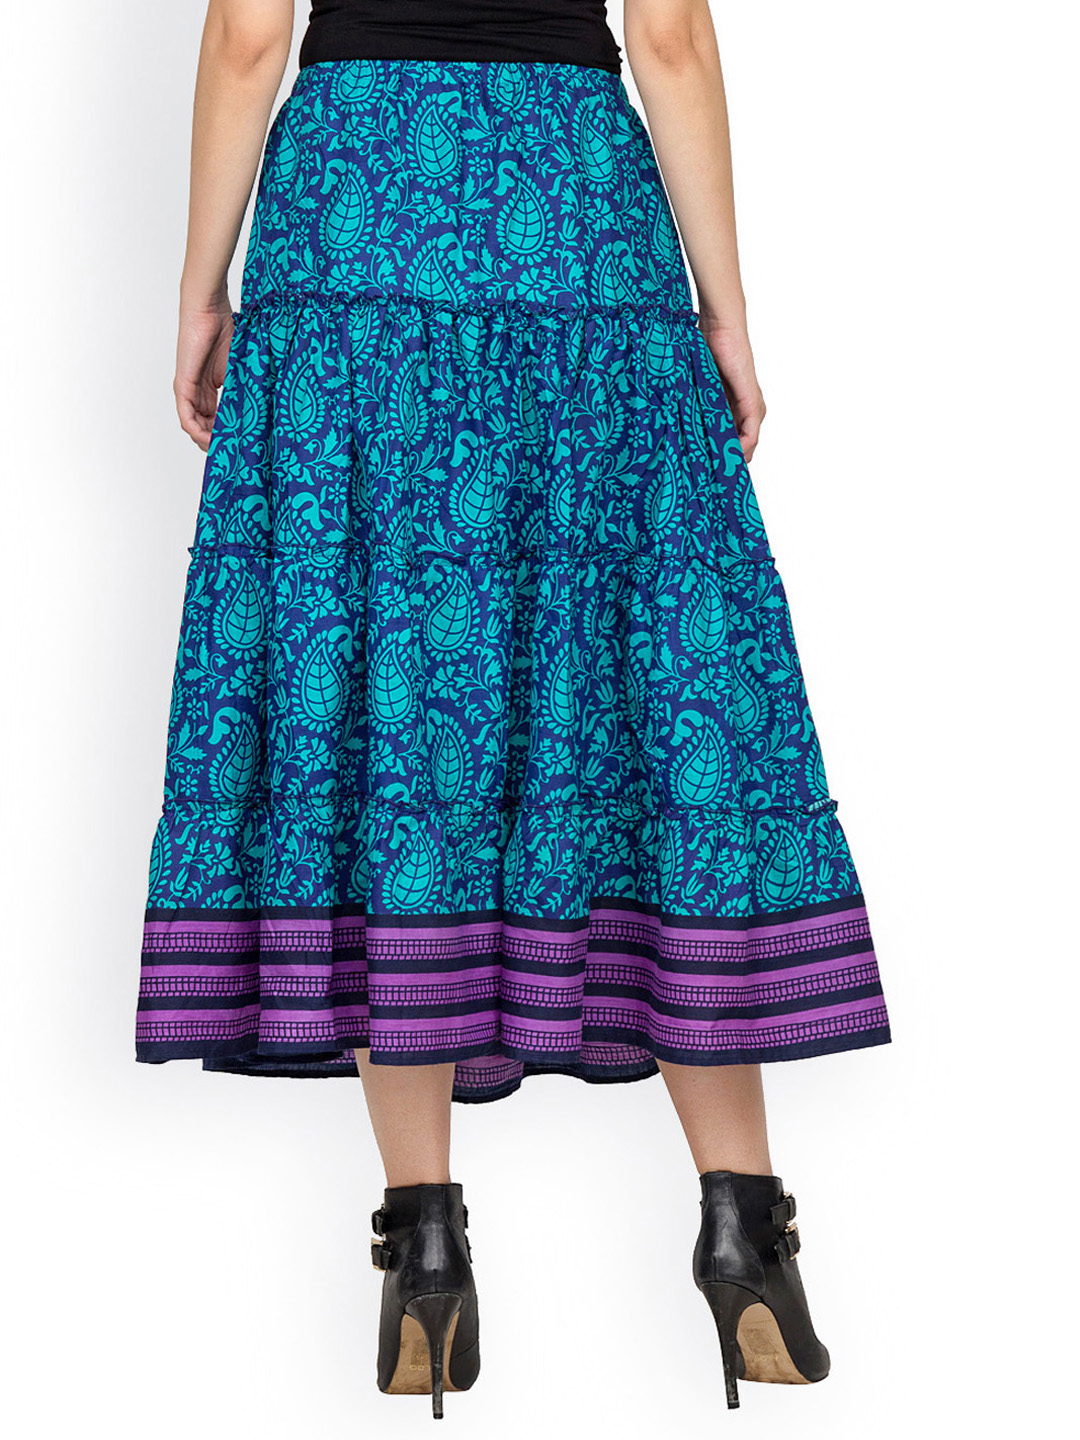 bcef69217f Roll over image to zoom in. Printed cotton Layer Cut skirt With Elasticated  Waist. Ratings ...